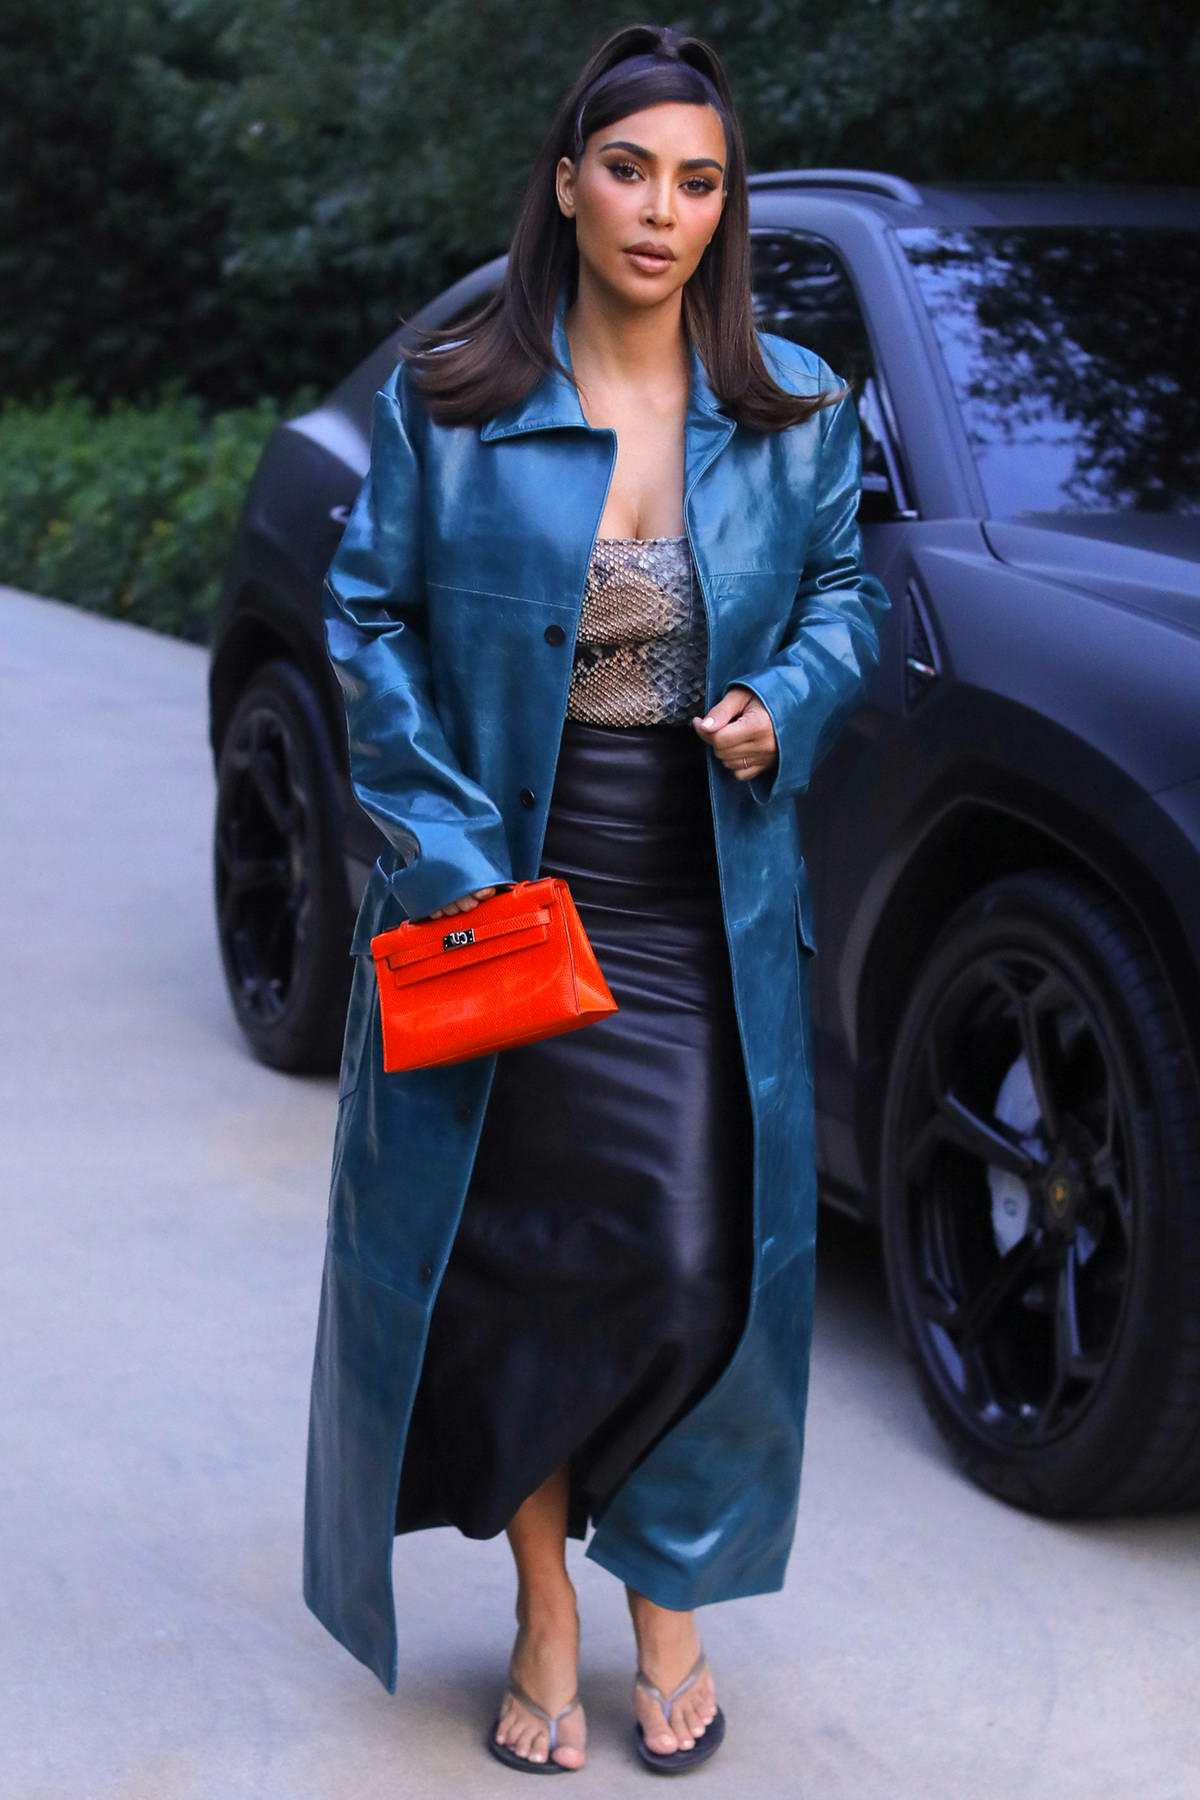 Kim Kardashian seen wearing a blue trench coat as she leaves a business meeting in Beverly Hills, California